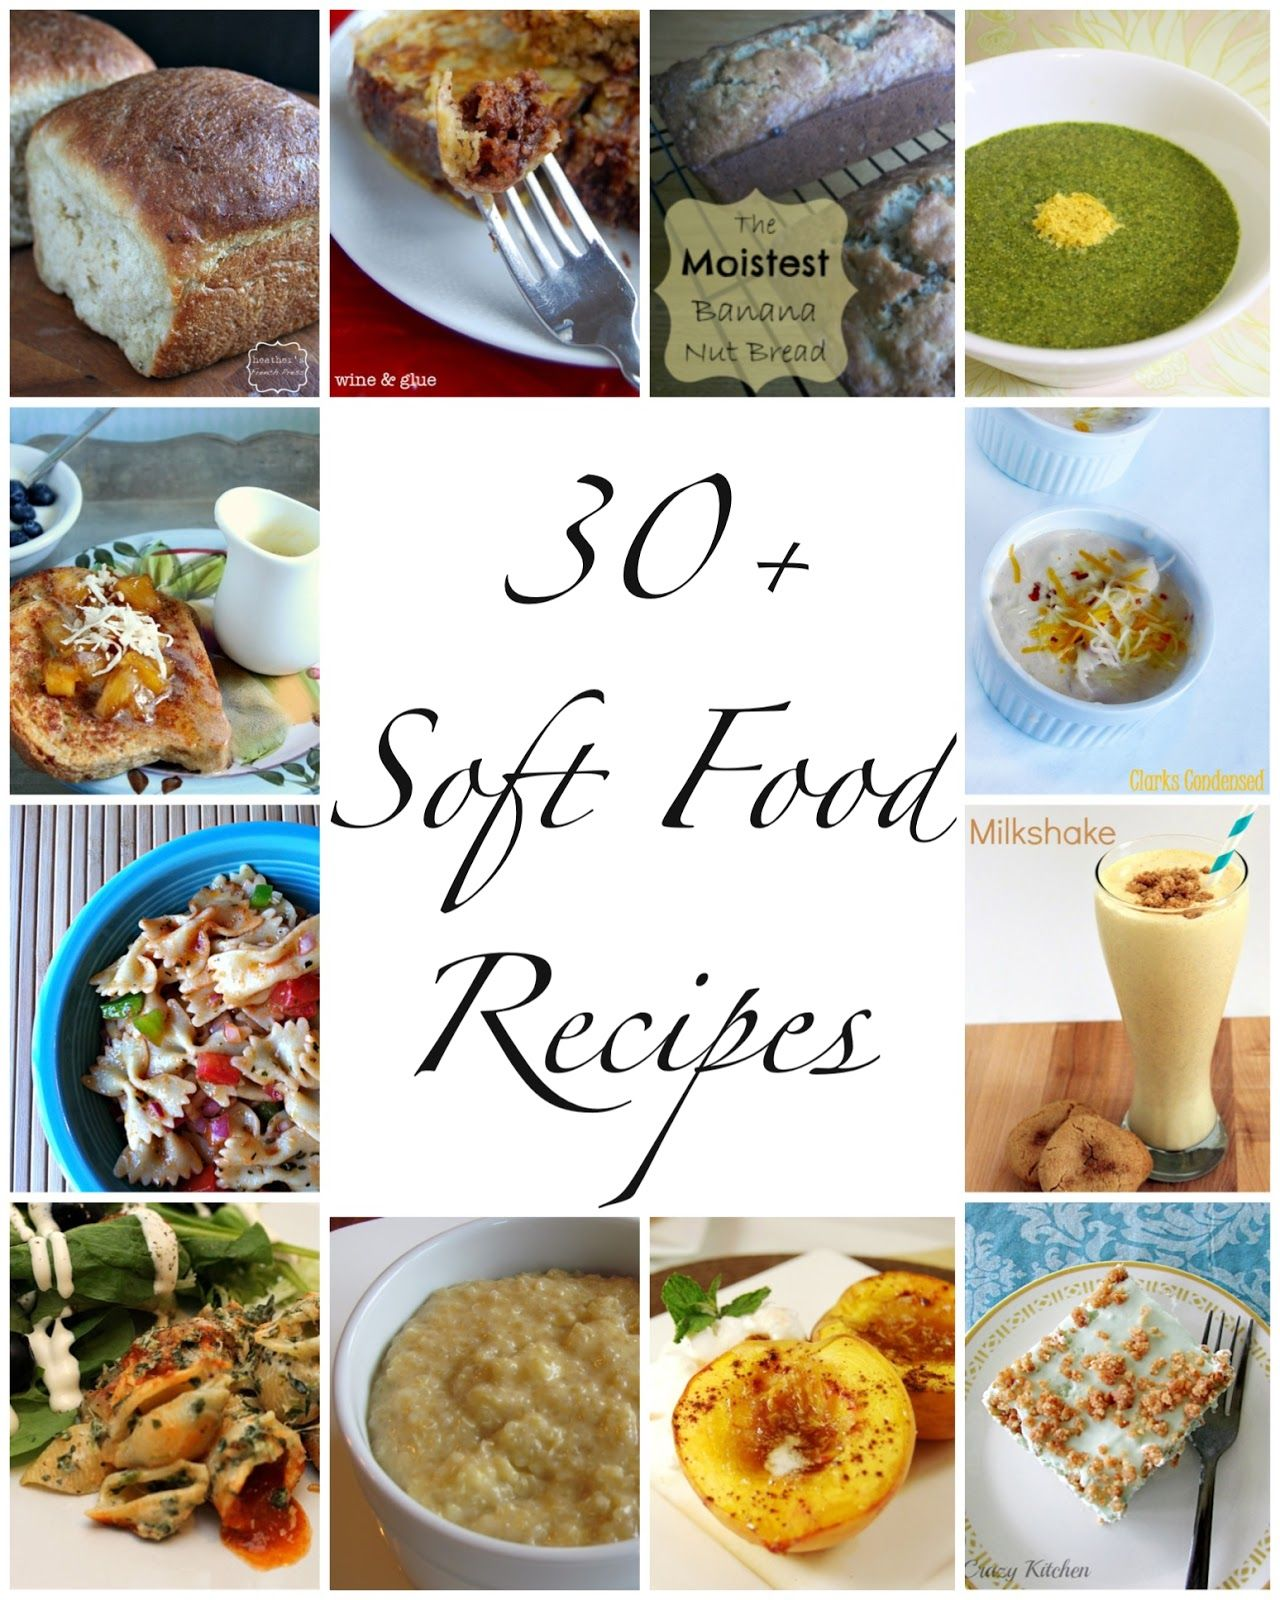 30+ Soft Food Recipes Pureed food recipes, Soft foods